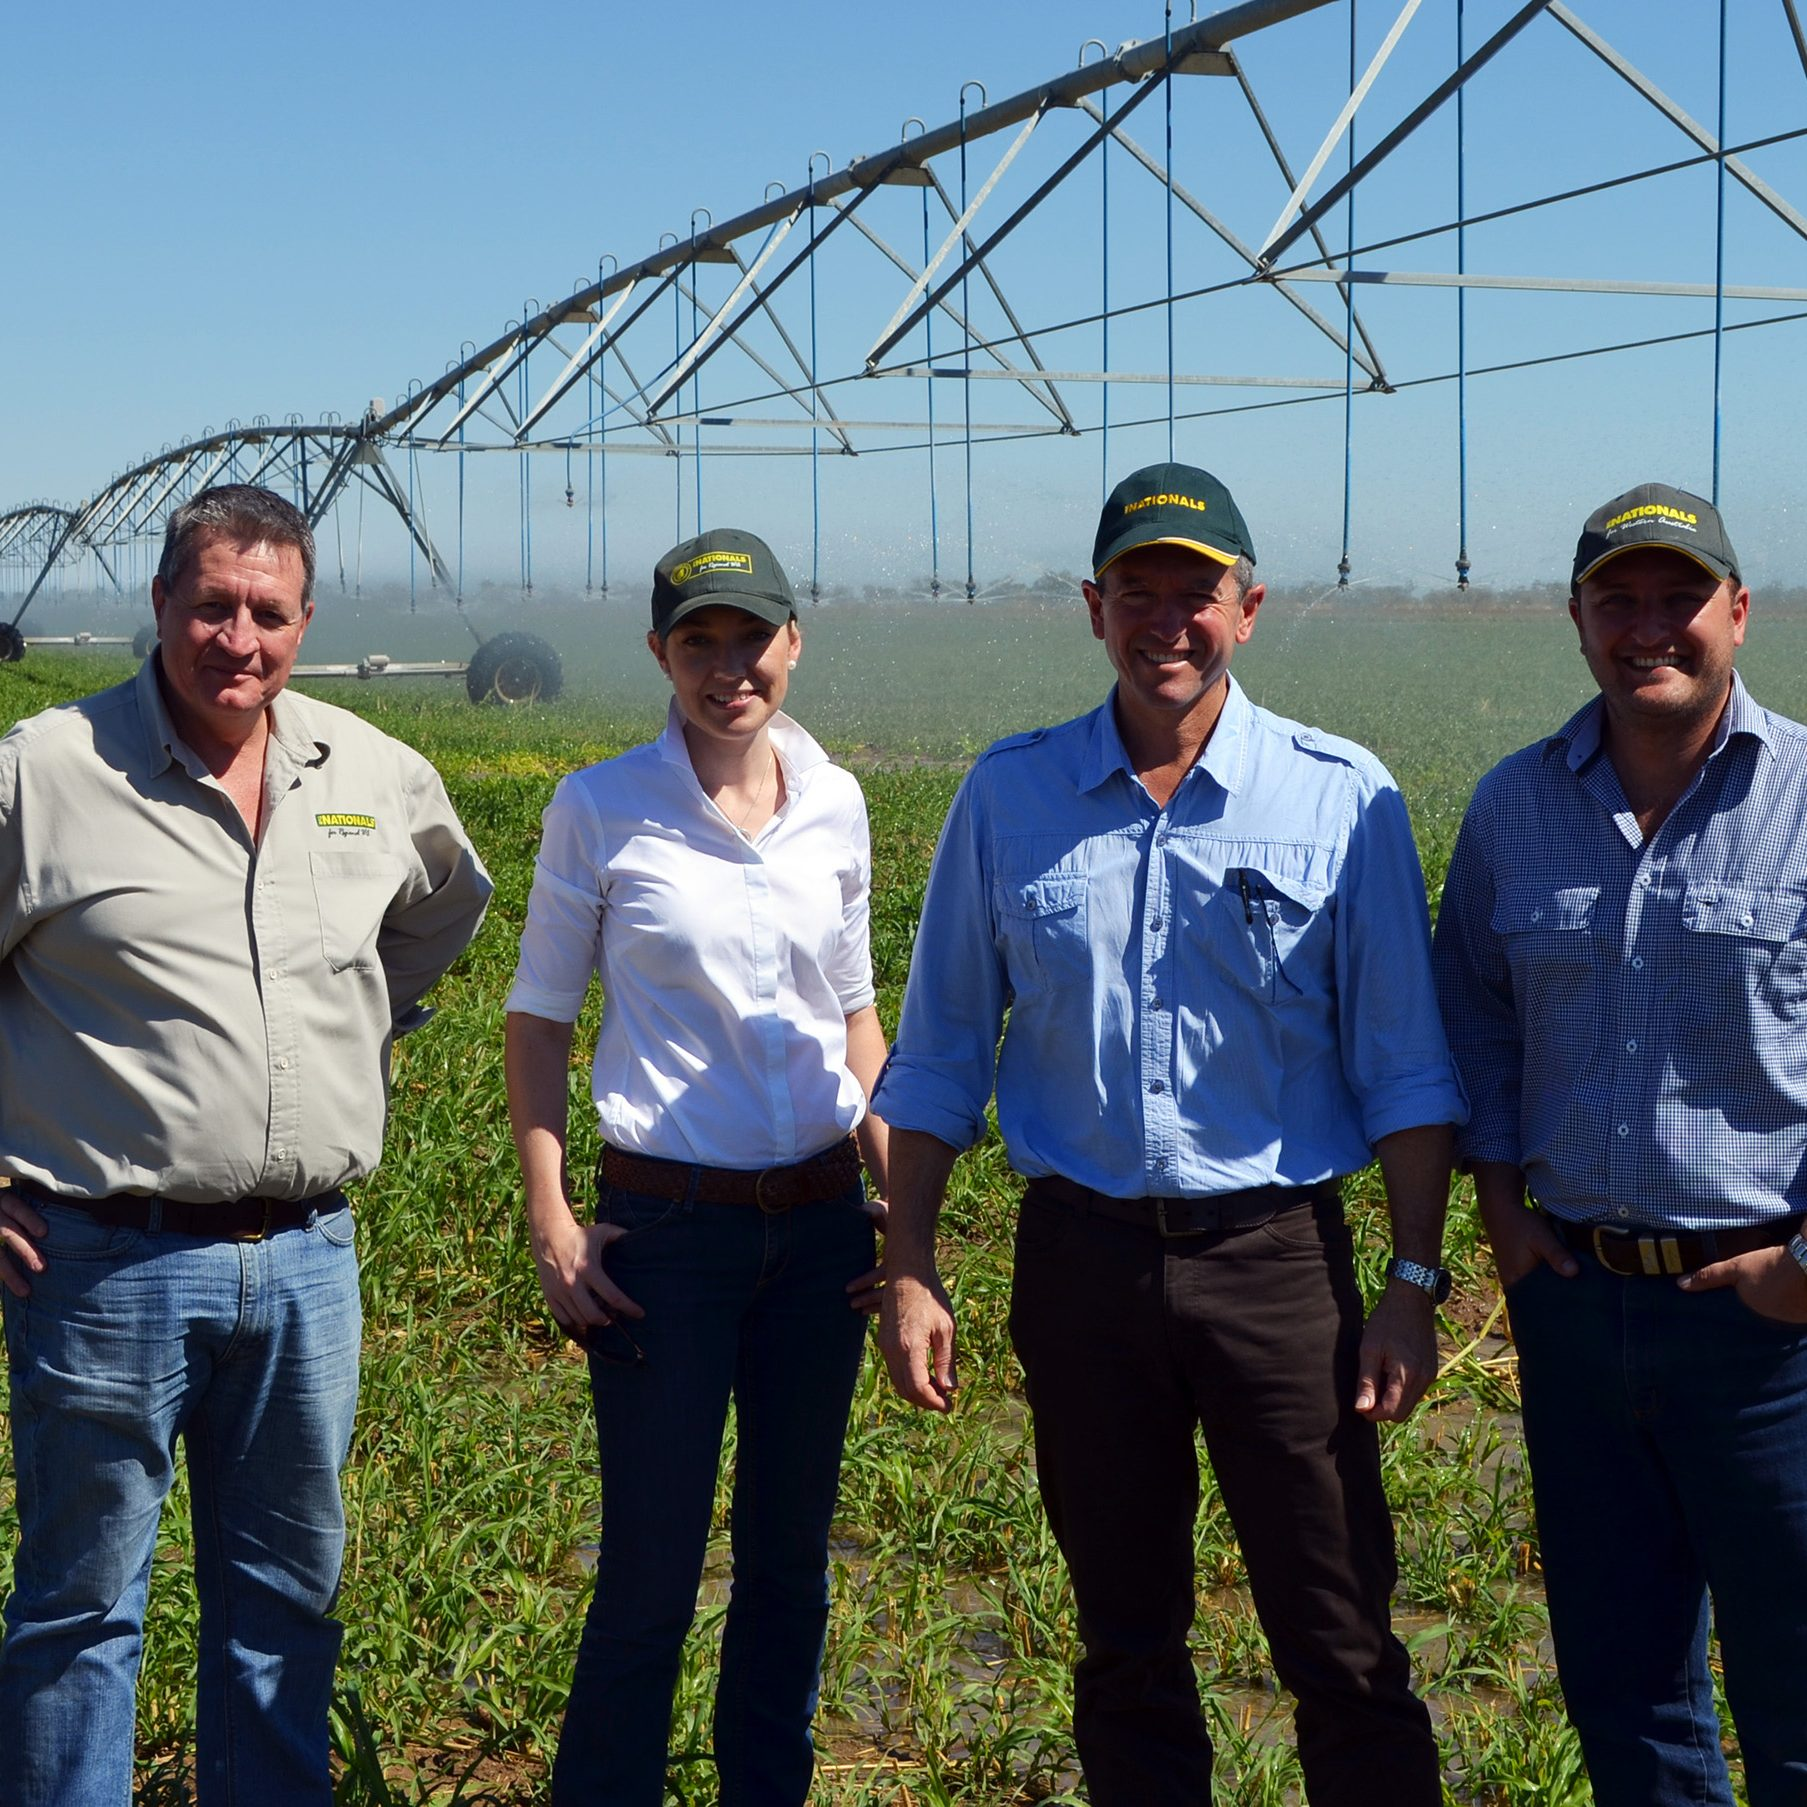 Dave Grills MLC, Water Minister Mia Davies, Regional Development Minister Terry Redman and Vince Catania MLA at Gogo Station near Fitzroy Crossing.